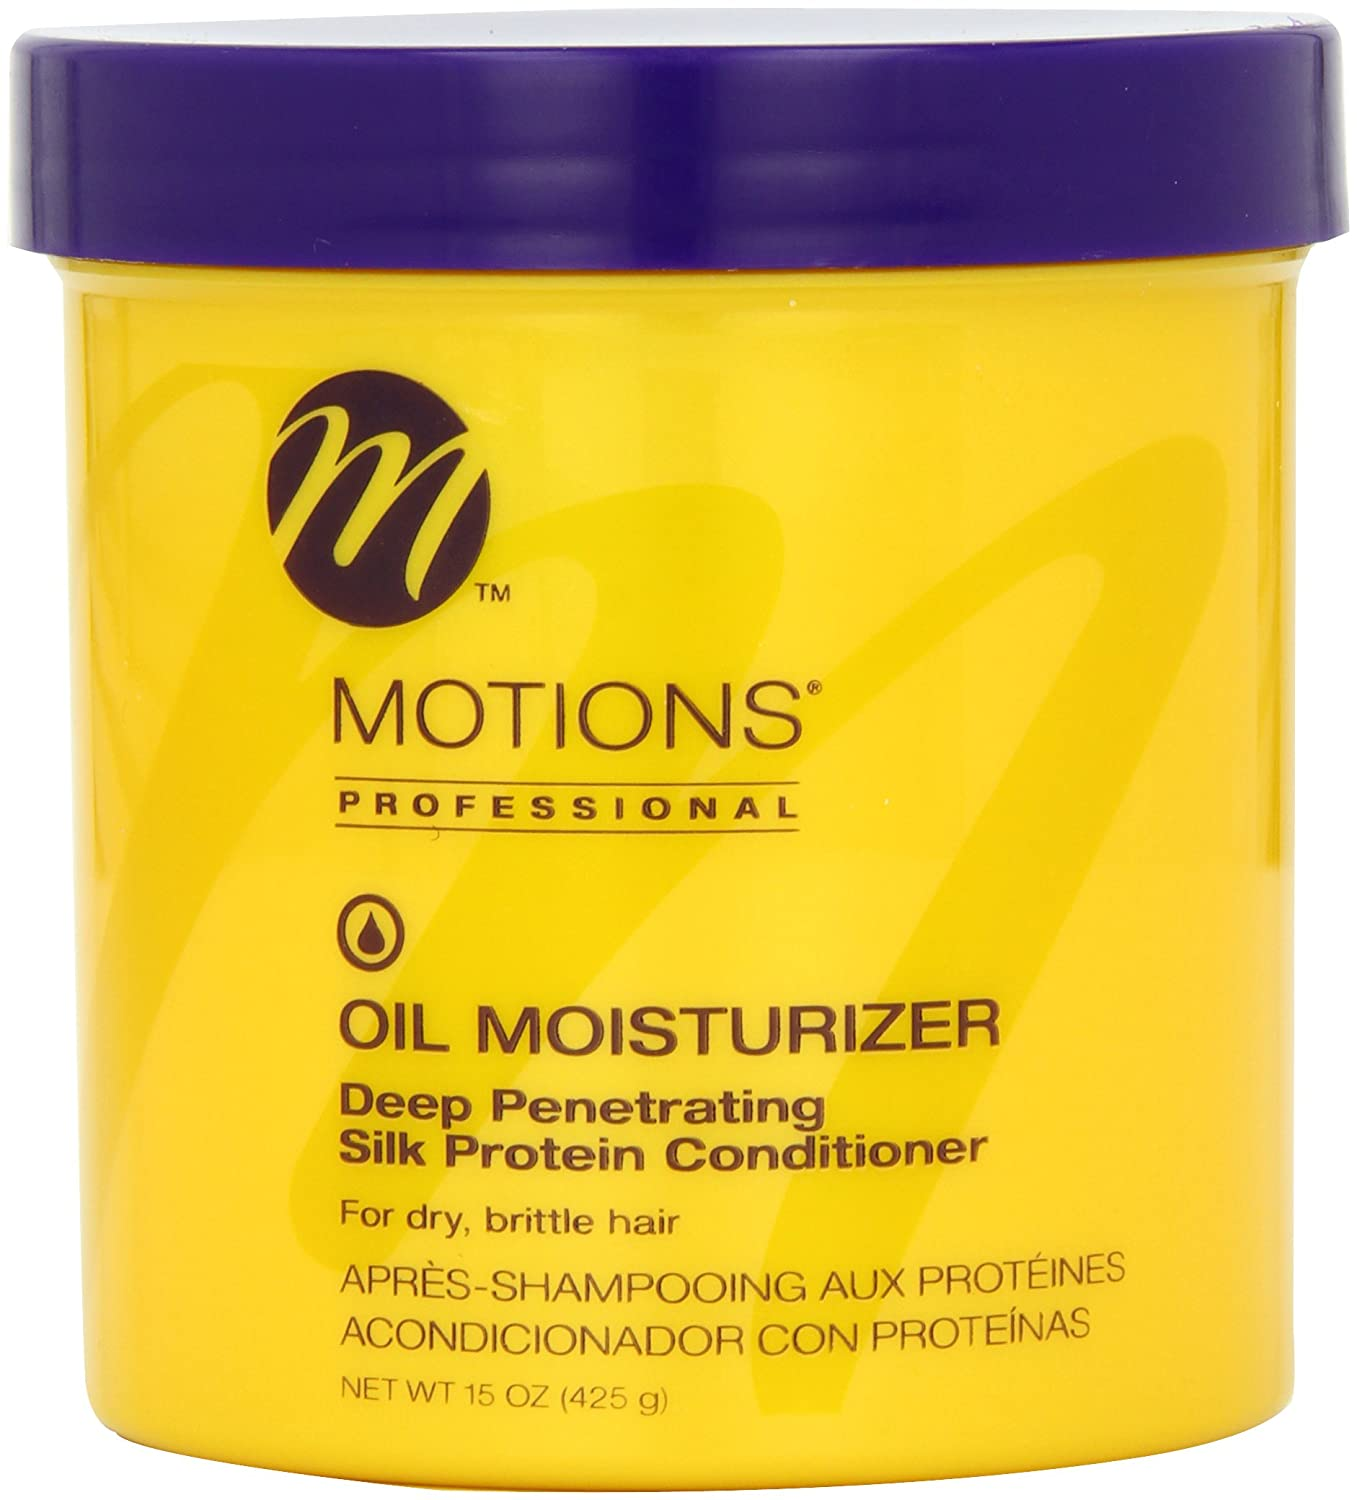 Motions Oil Moisturizer Silk Protein, for dry brittle hair 15 oz.